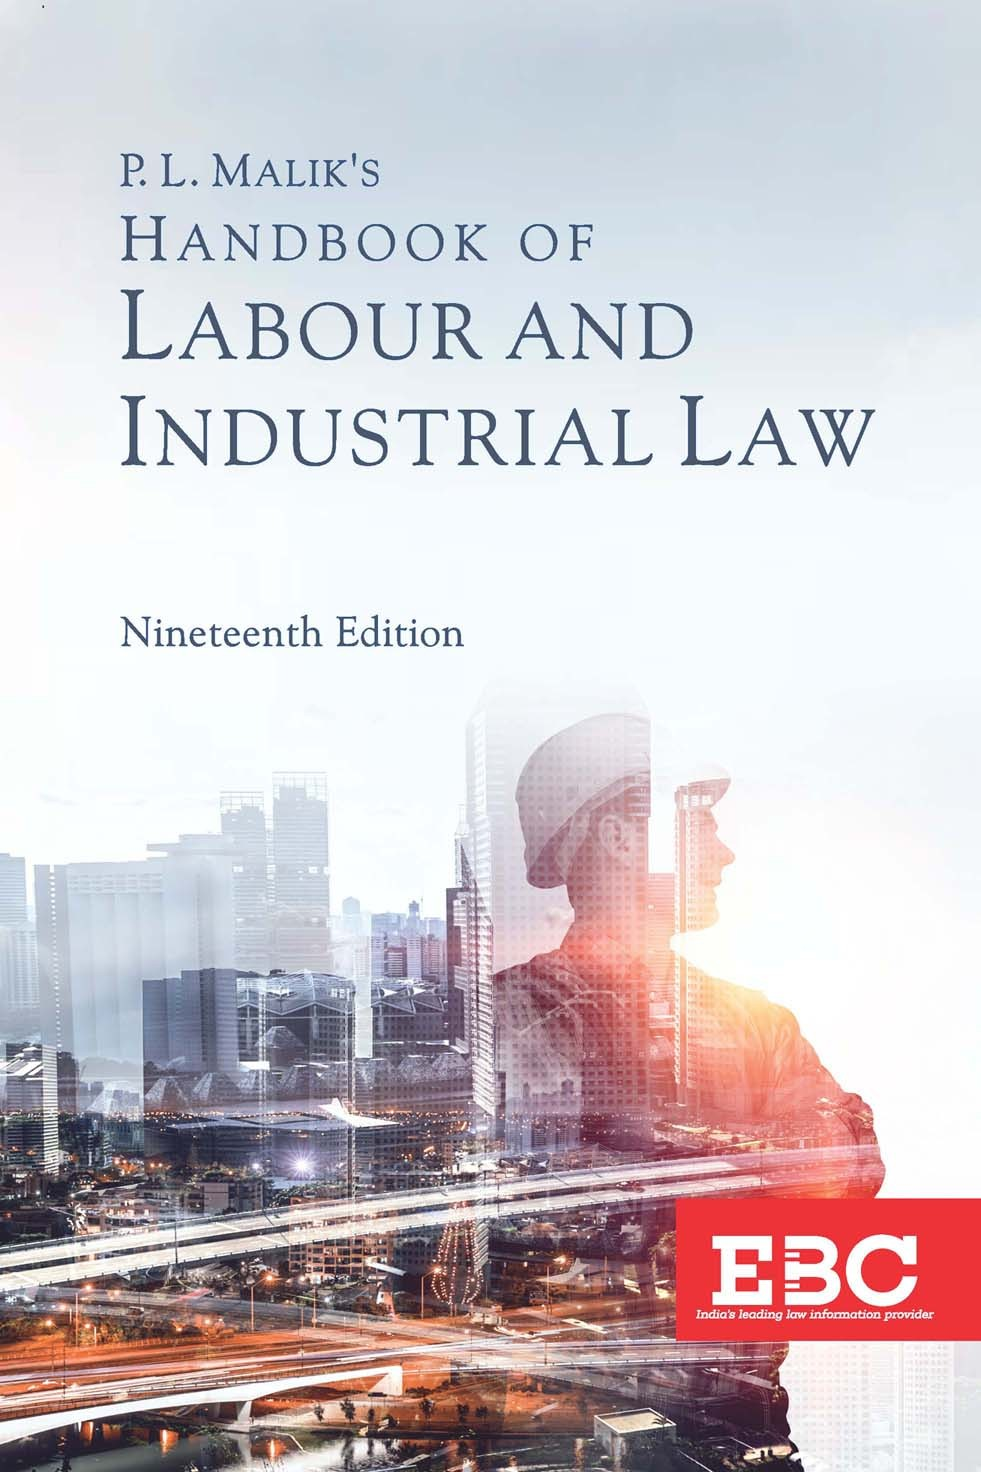 P. L. Malik's Handbook of Labour and Industrial Law